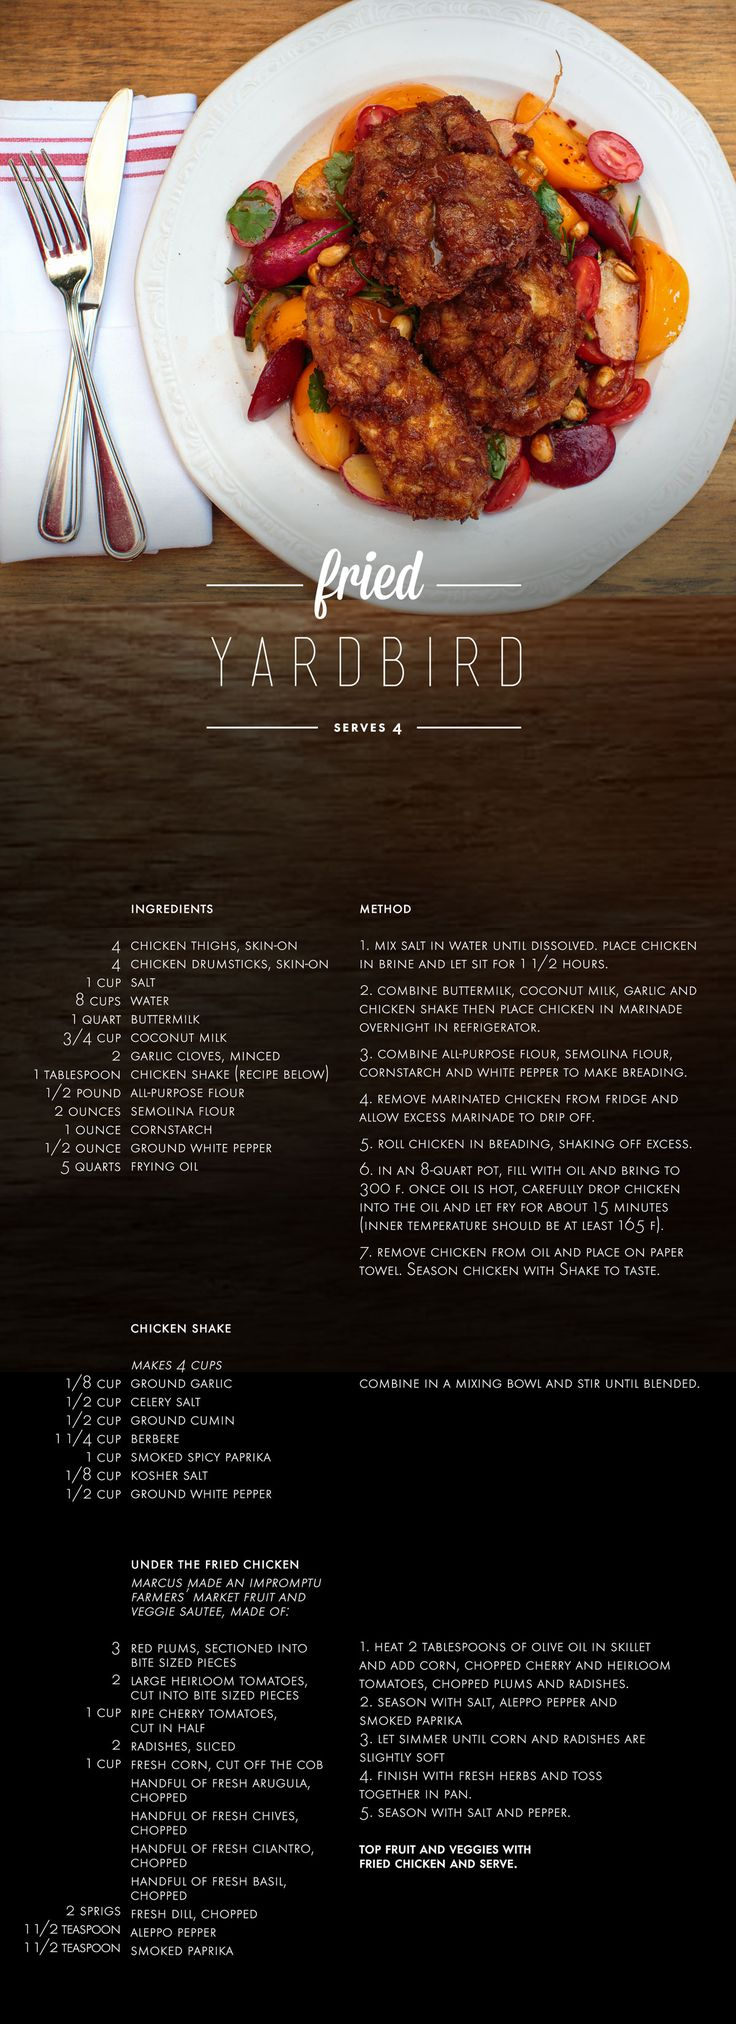 Marcus Samuelsson - Fried Yardbird | Cooking | Pinterest